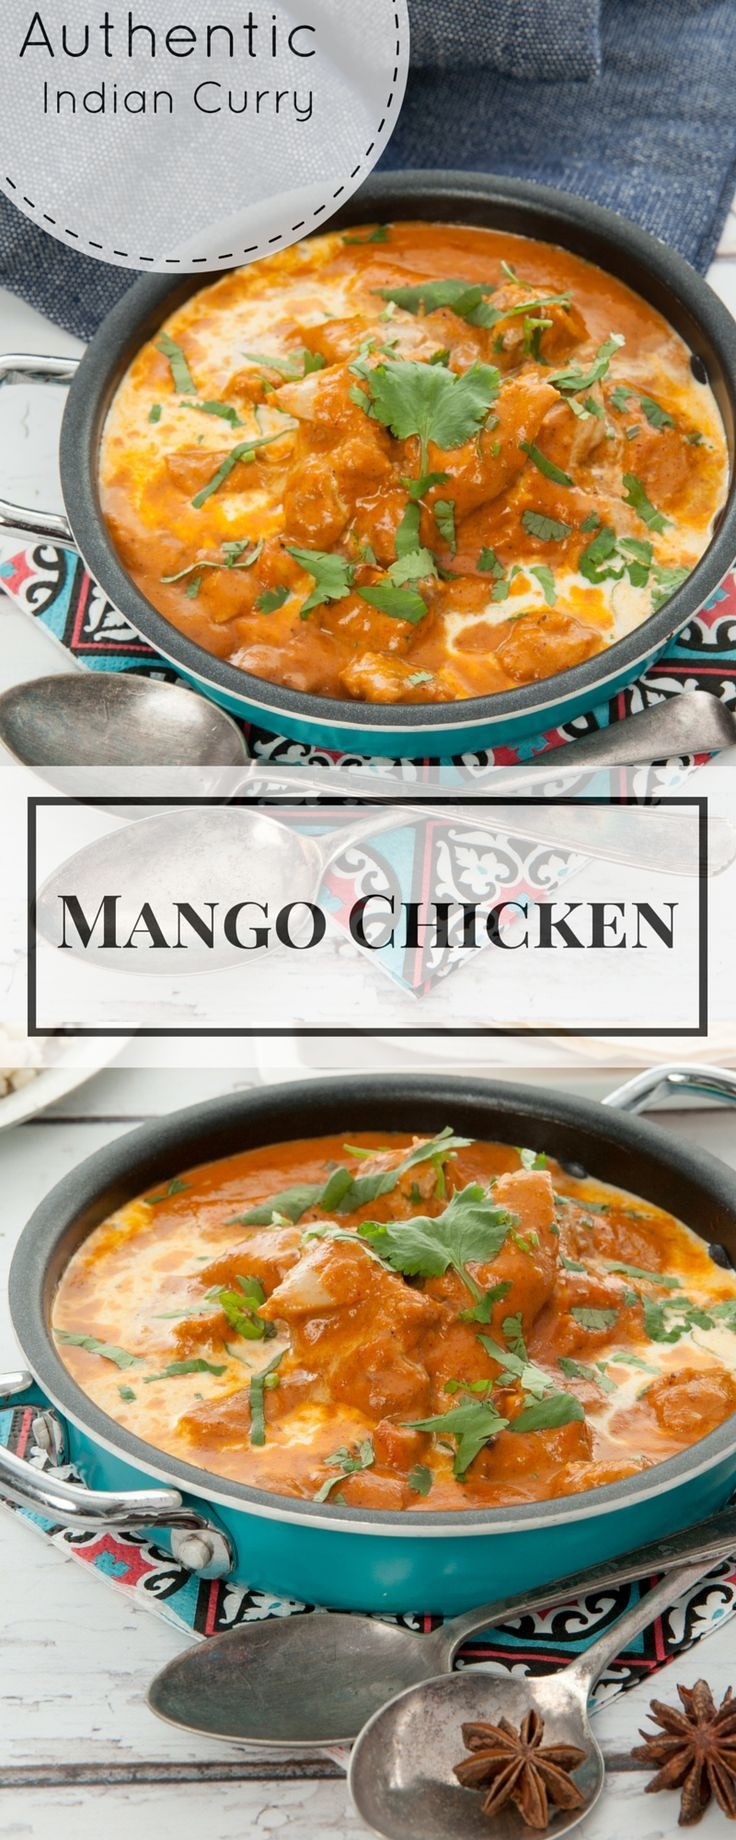 Mango Chicken is a deliciously simple family favourite Indian Curry.